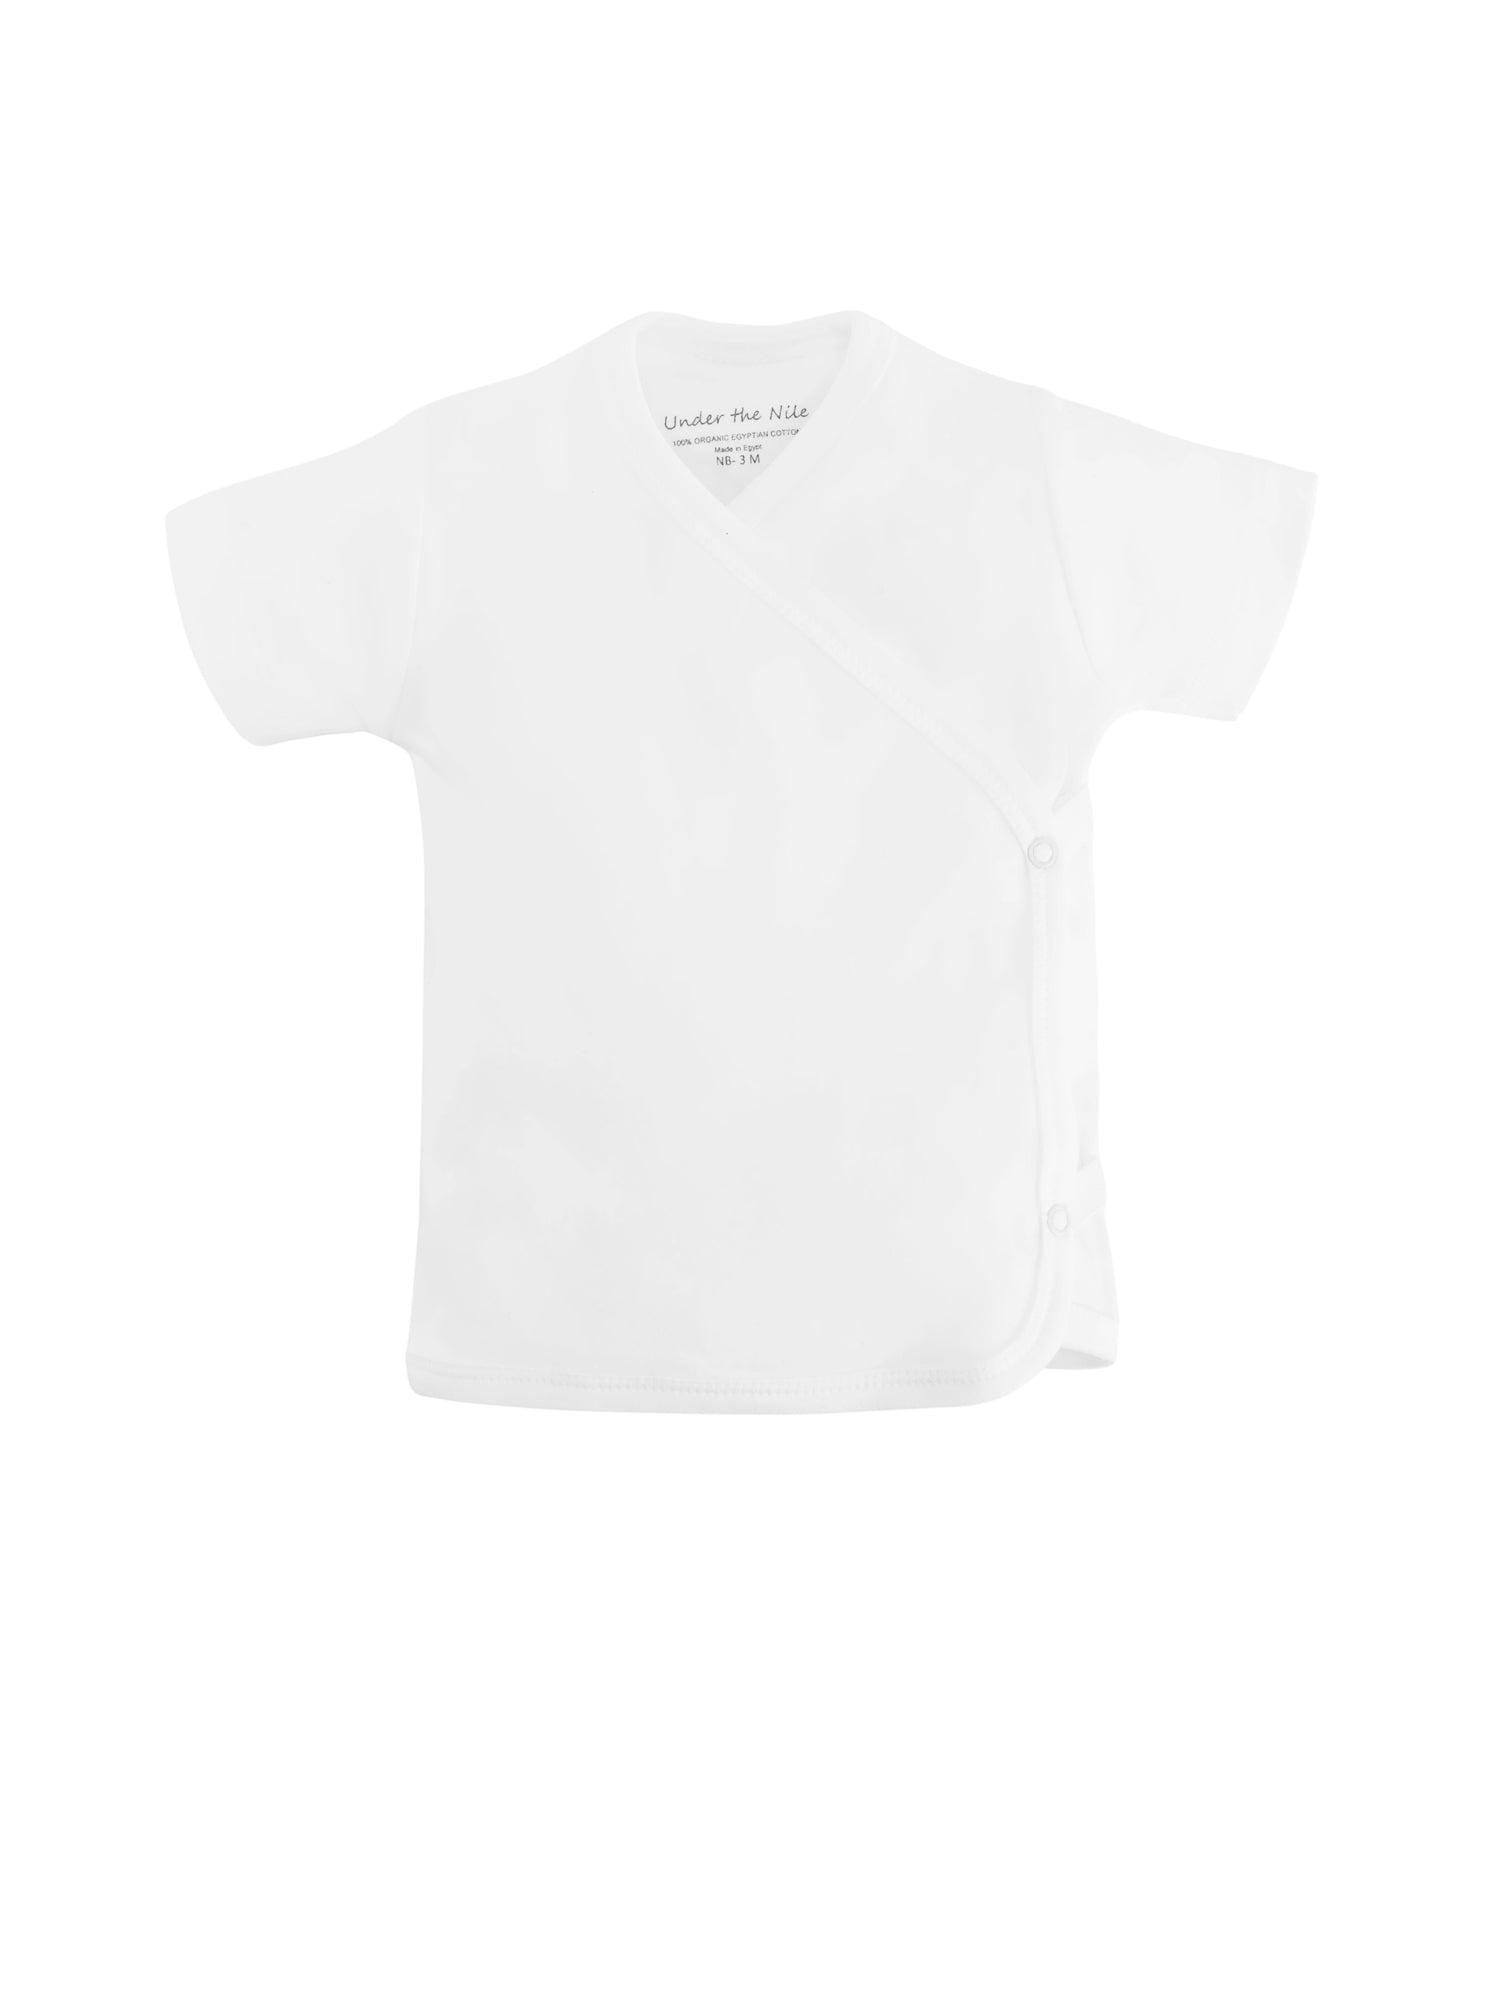 Short Sleeve Side Snap T-shirt - Off-White Value Pack